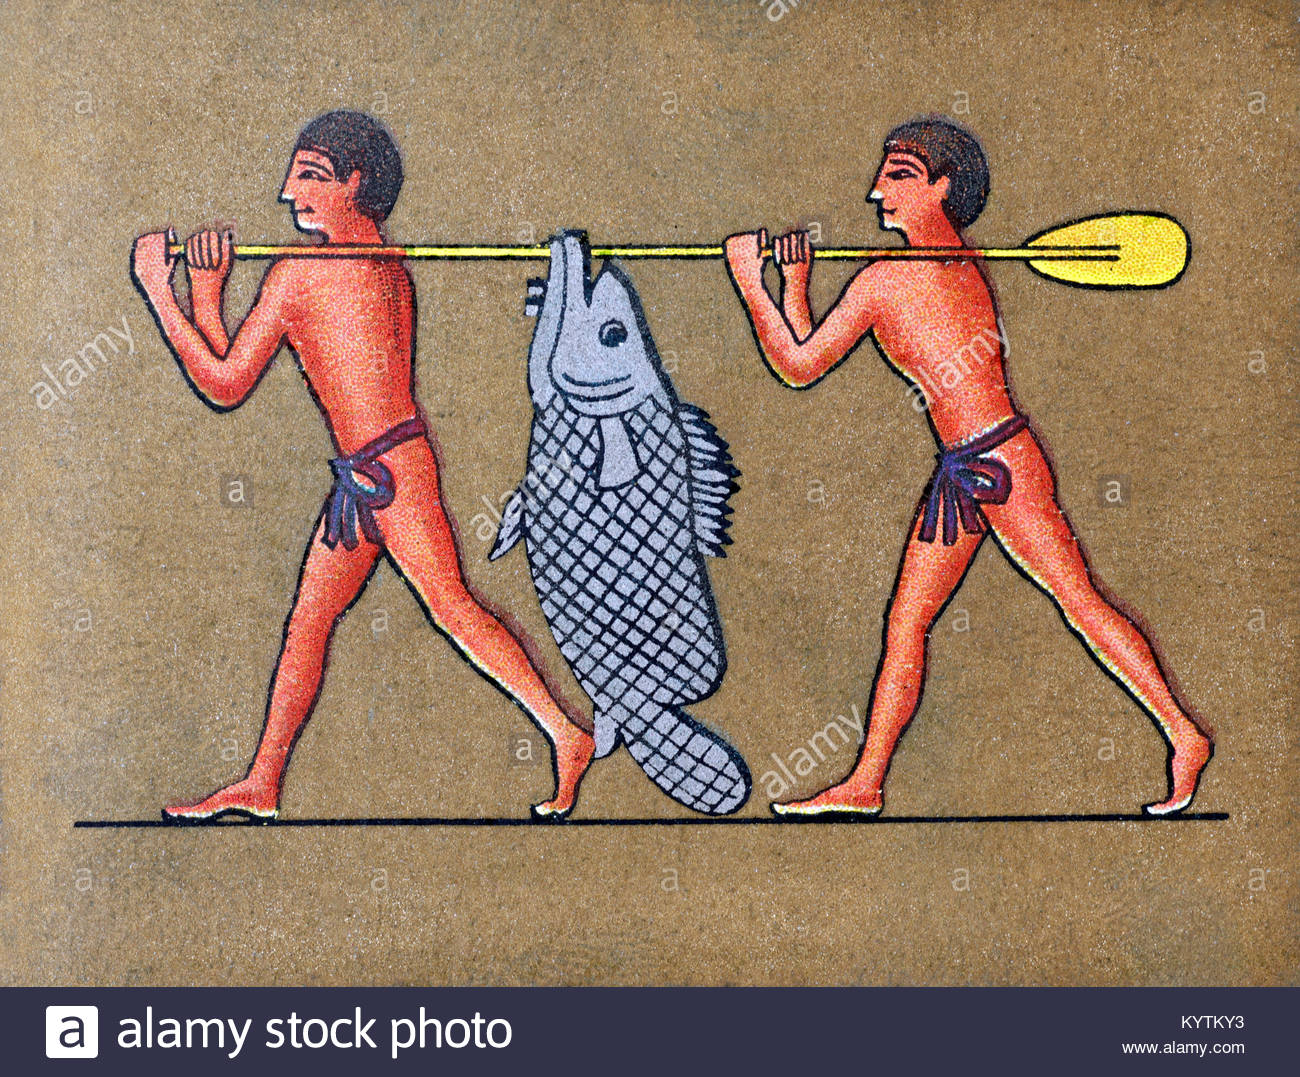 Depiction of ancient Egyptians carrying a fish from Lake Moeris - Stock Image